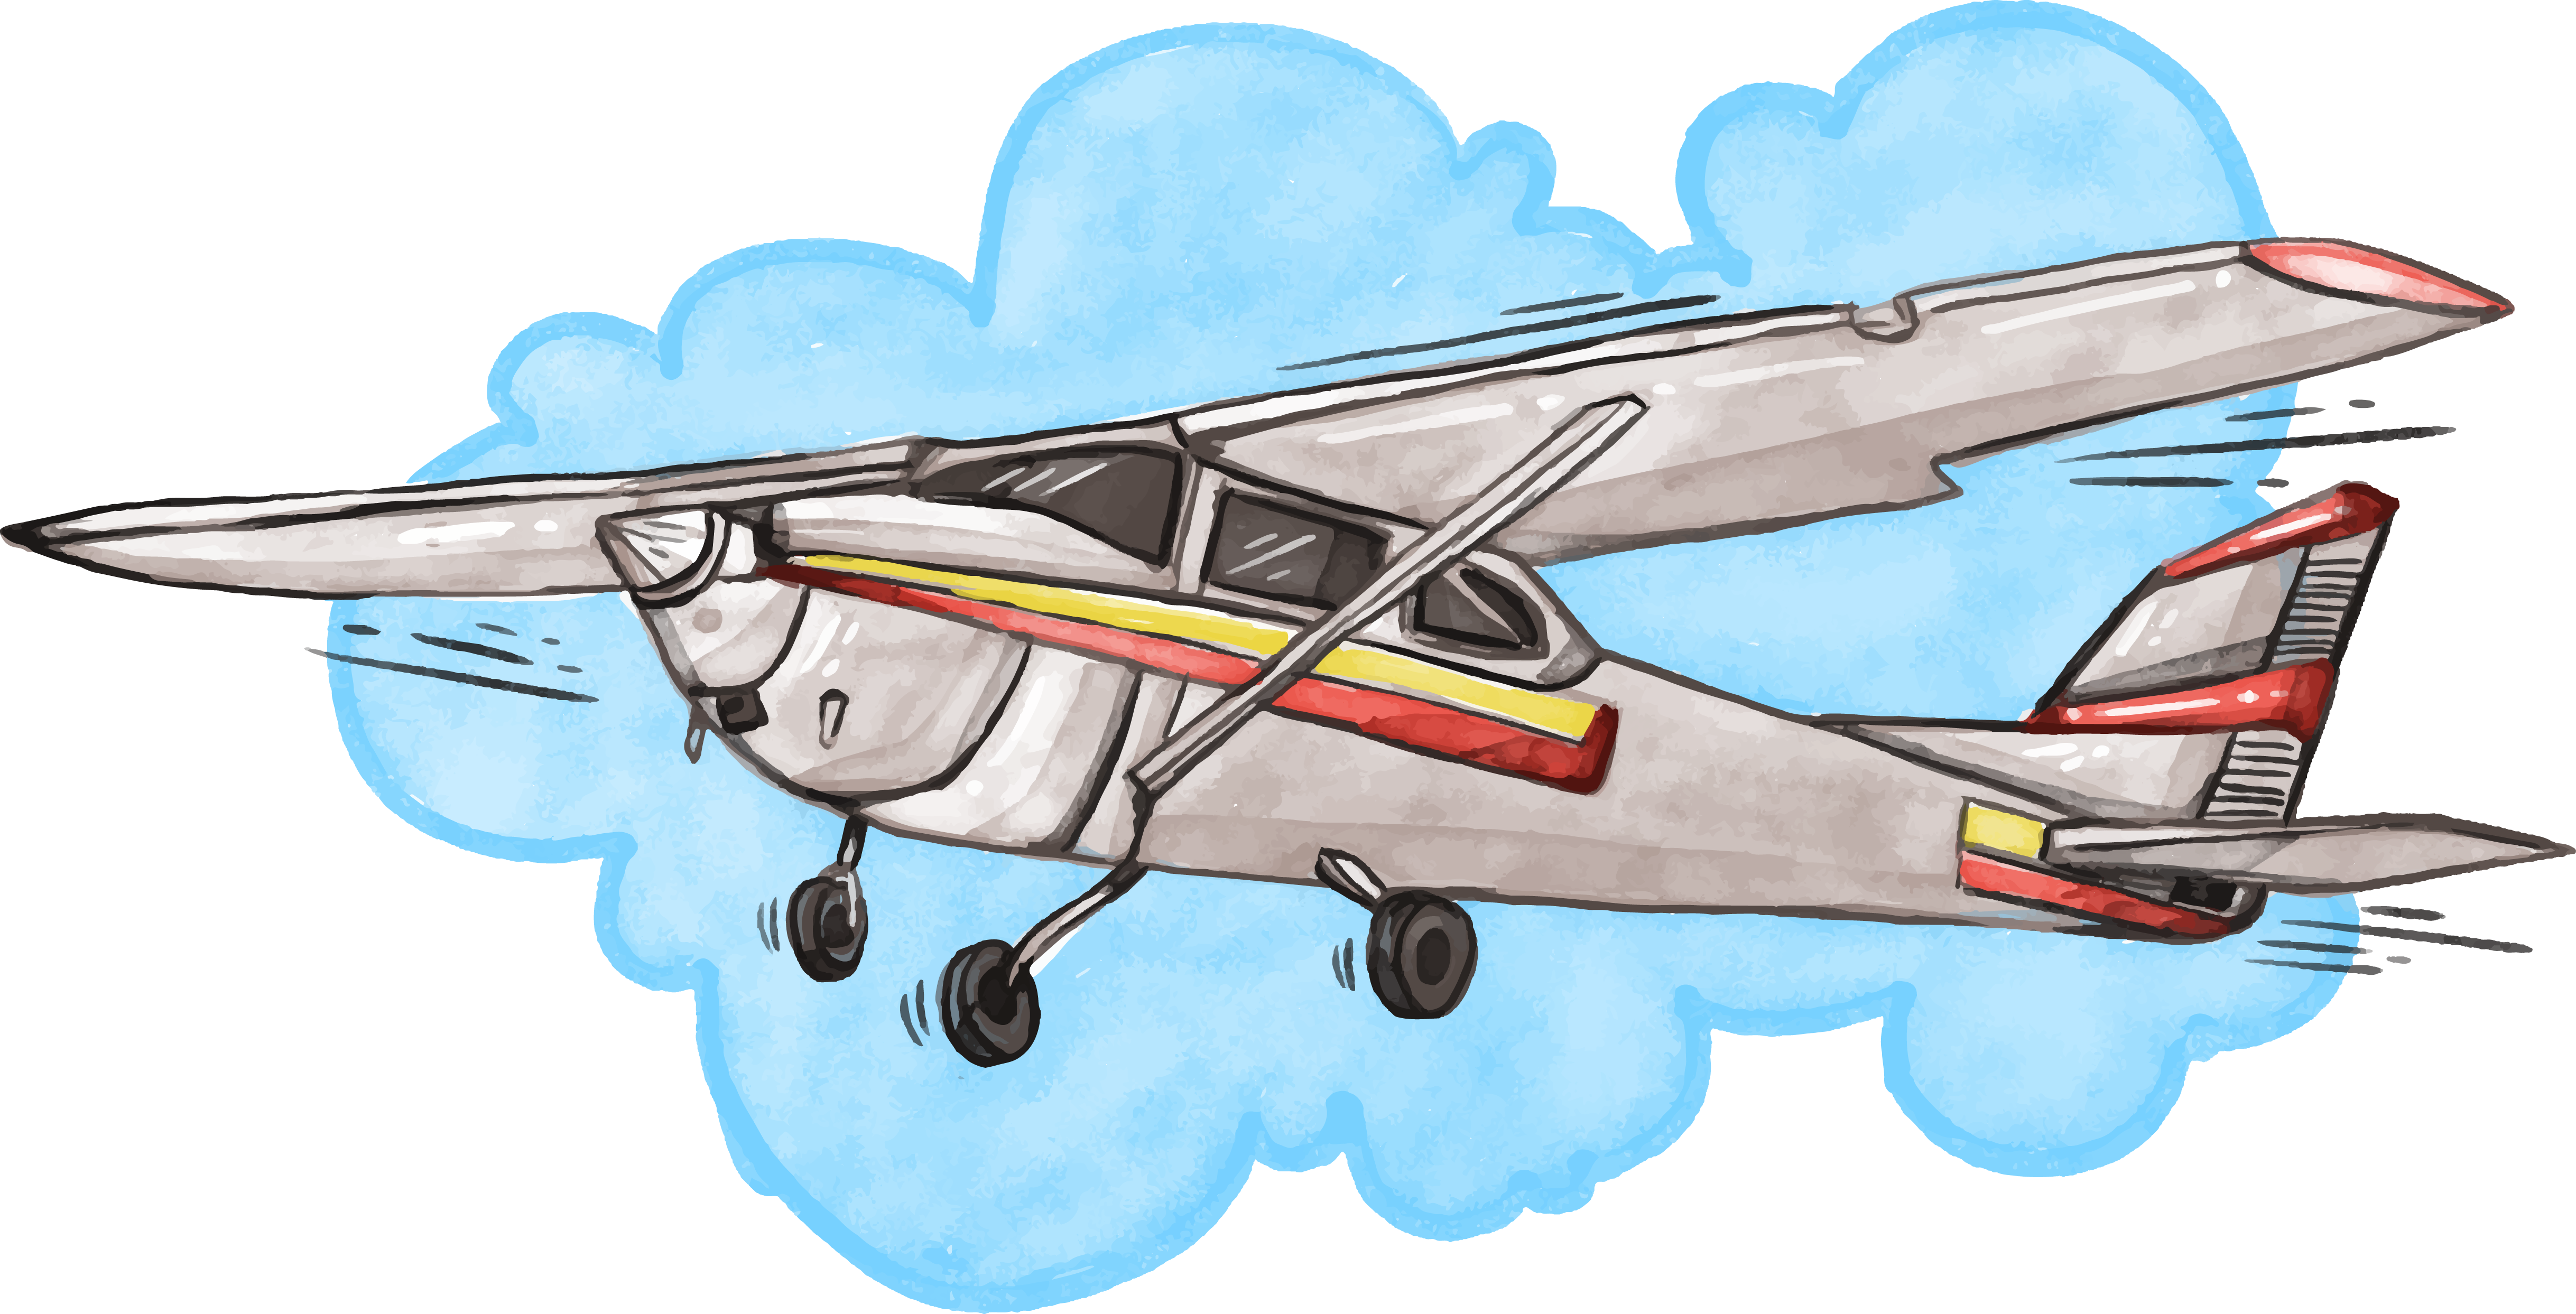 Flight Airplane Cessna 152 Sky Free Clipart HQ PNG Image